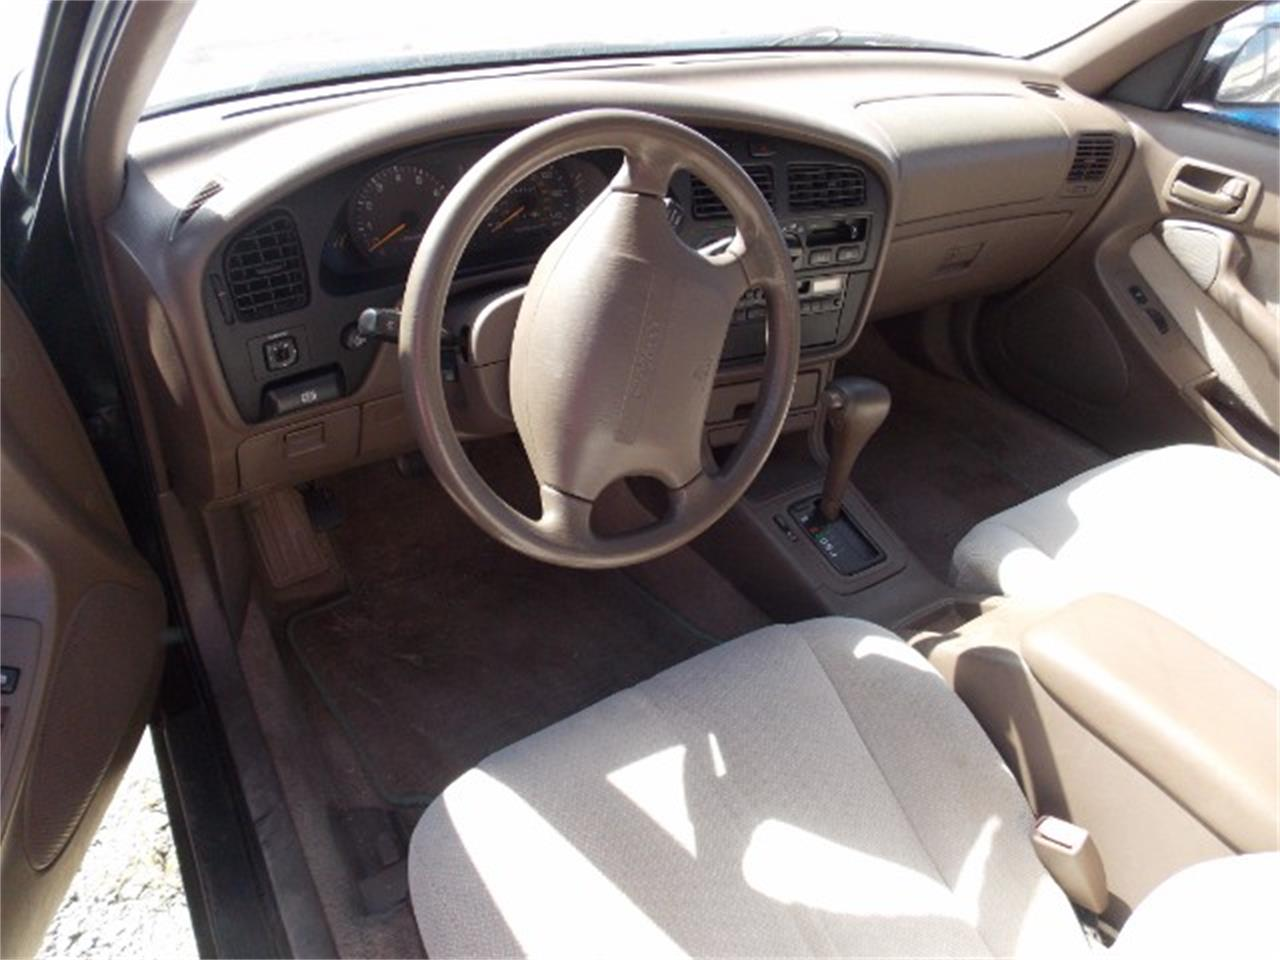 1995 Toyota Camry for sale in Gray Court, SC – photo 7